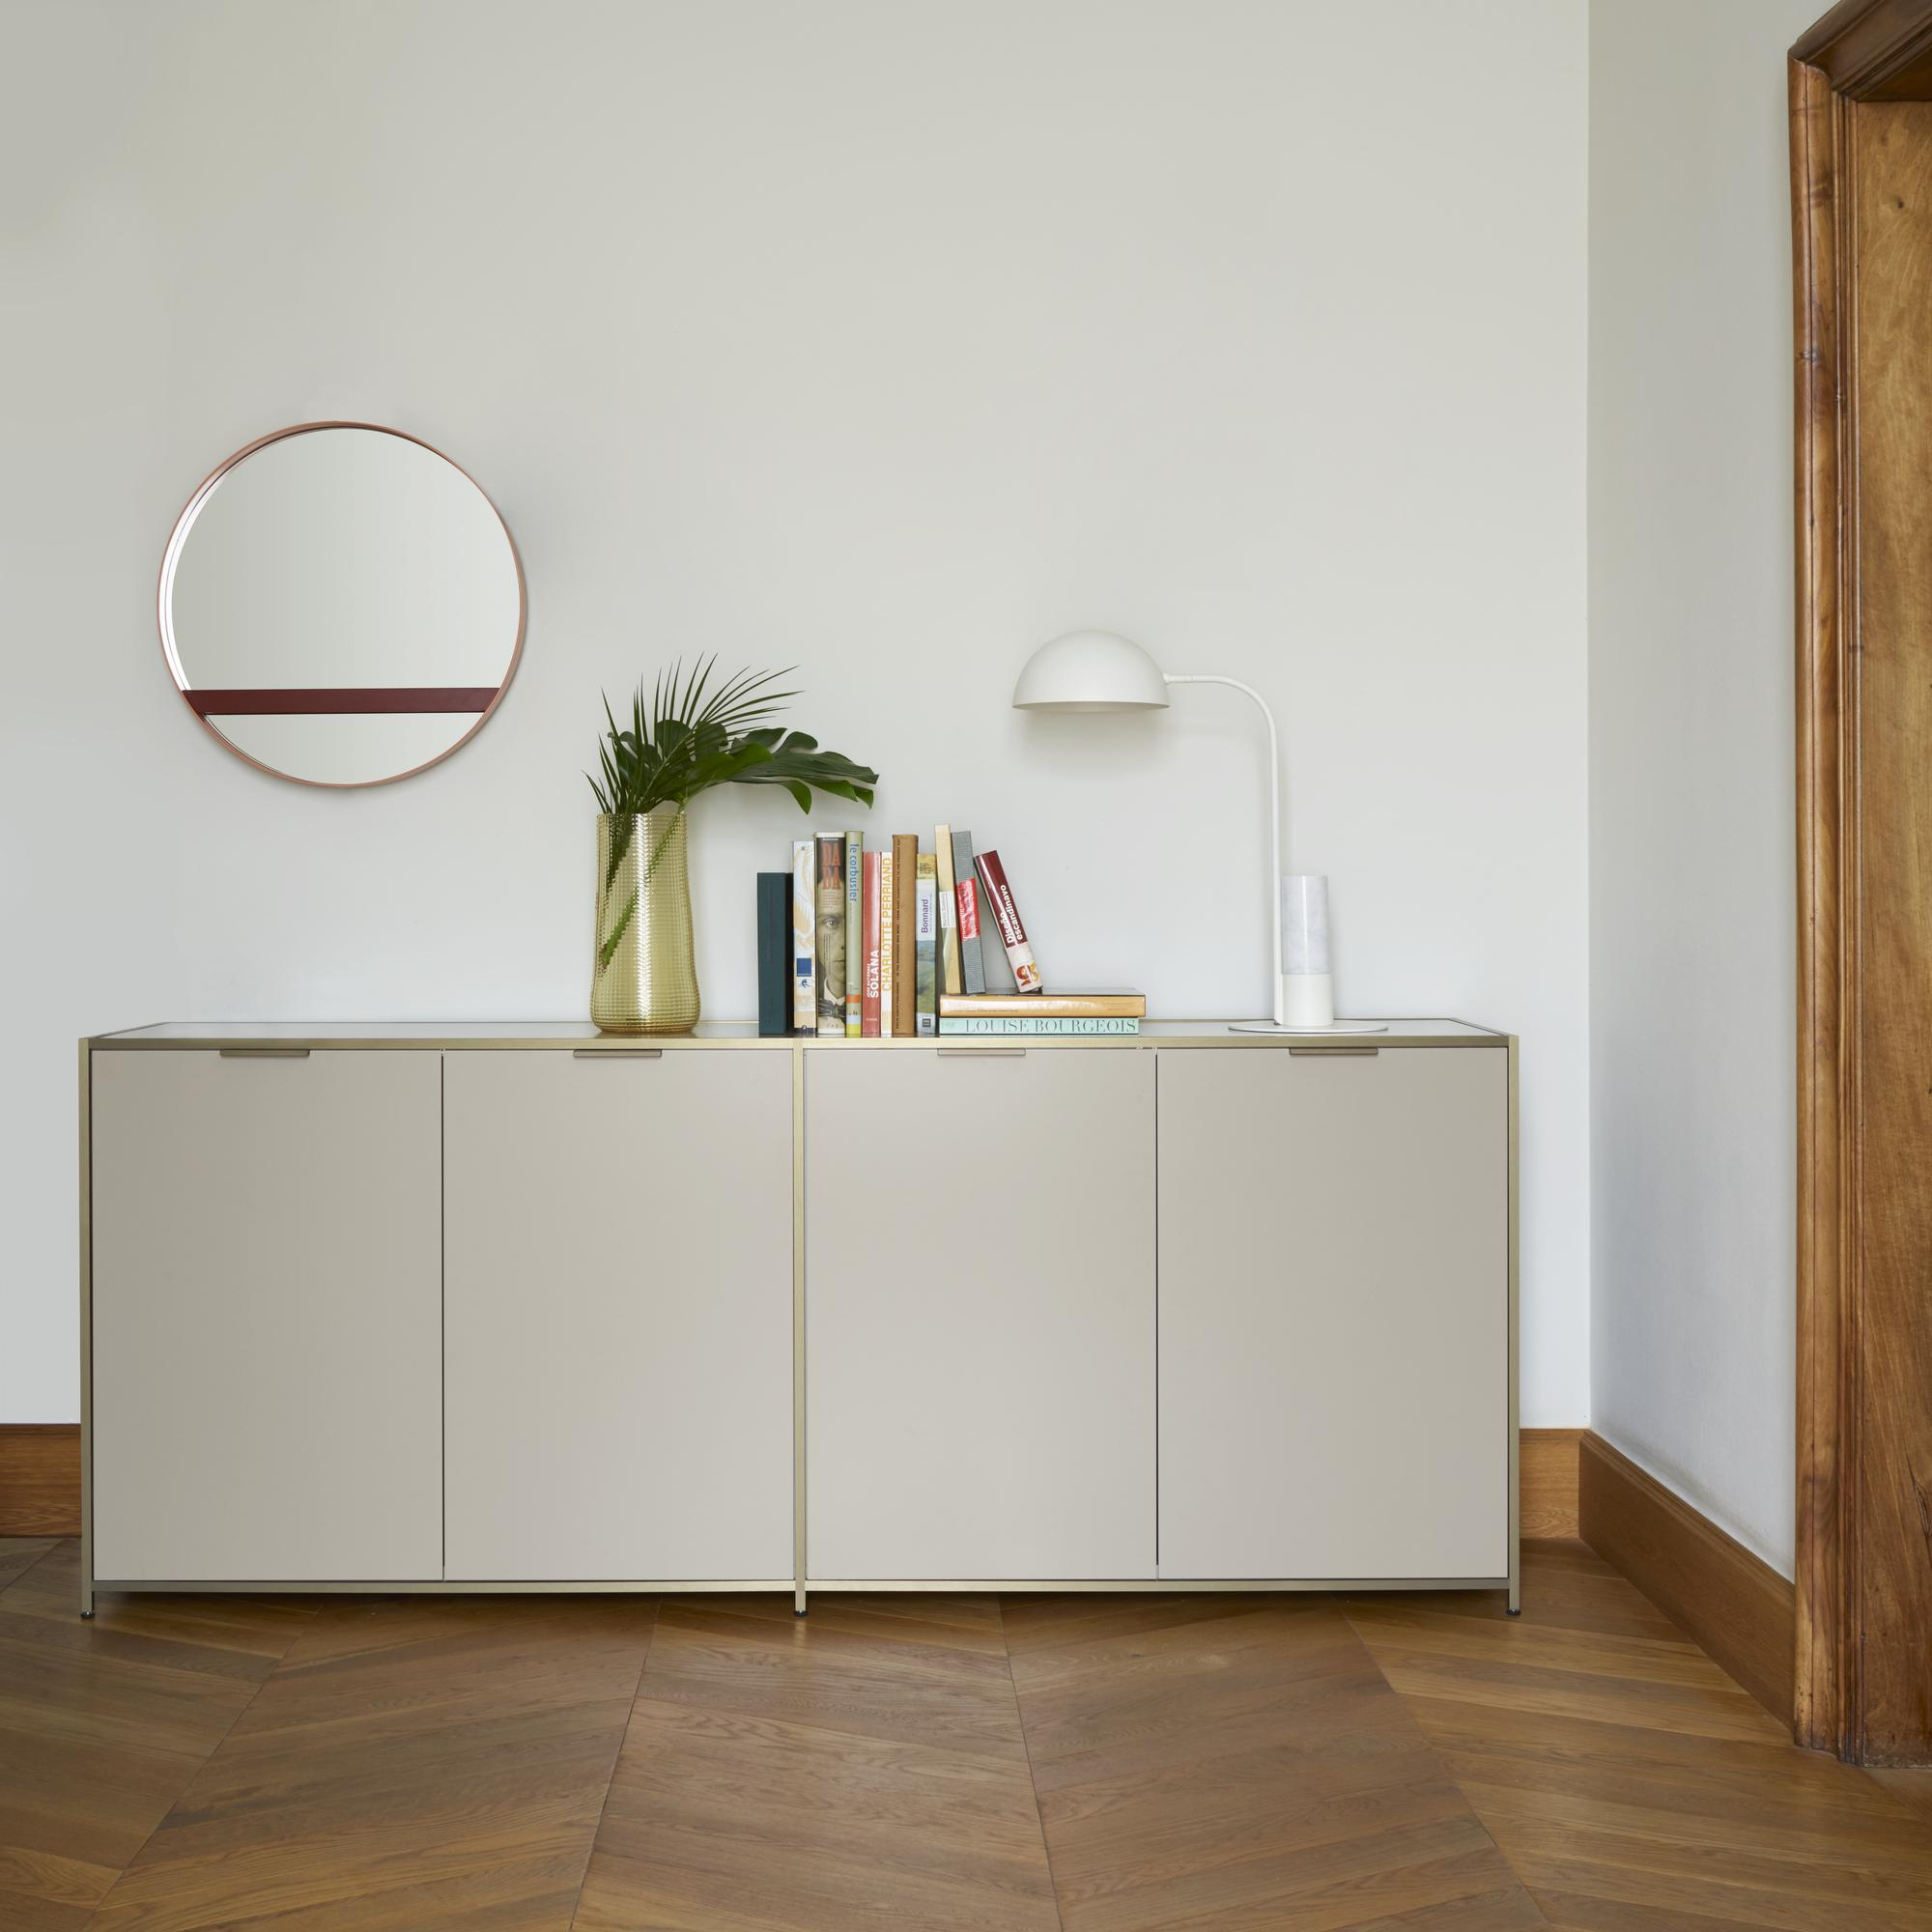 Mirror Altum Entrance From Designer Artefact Ligne Roset Official Site